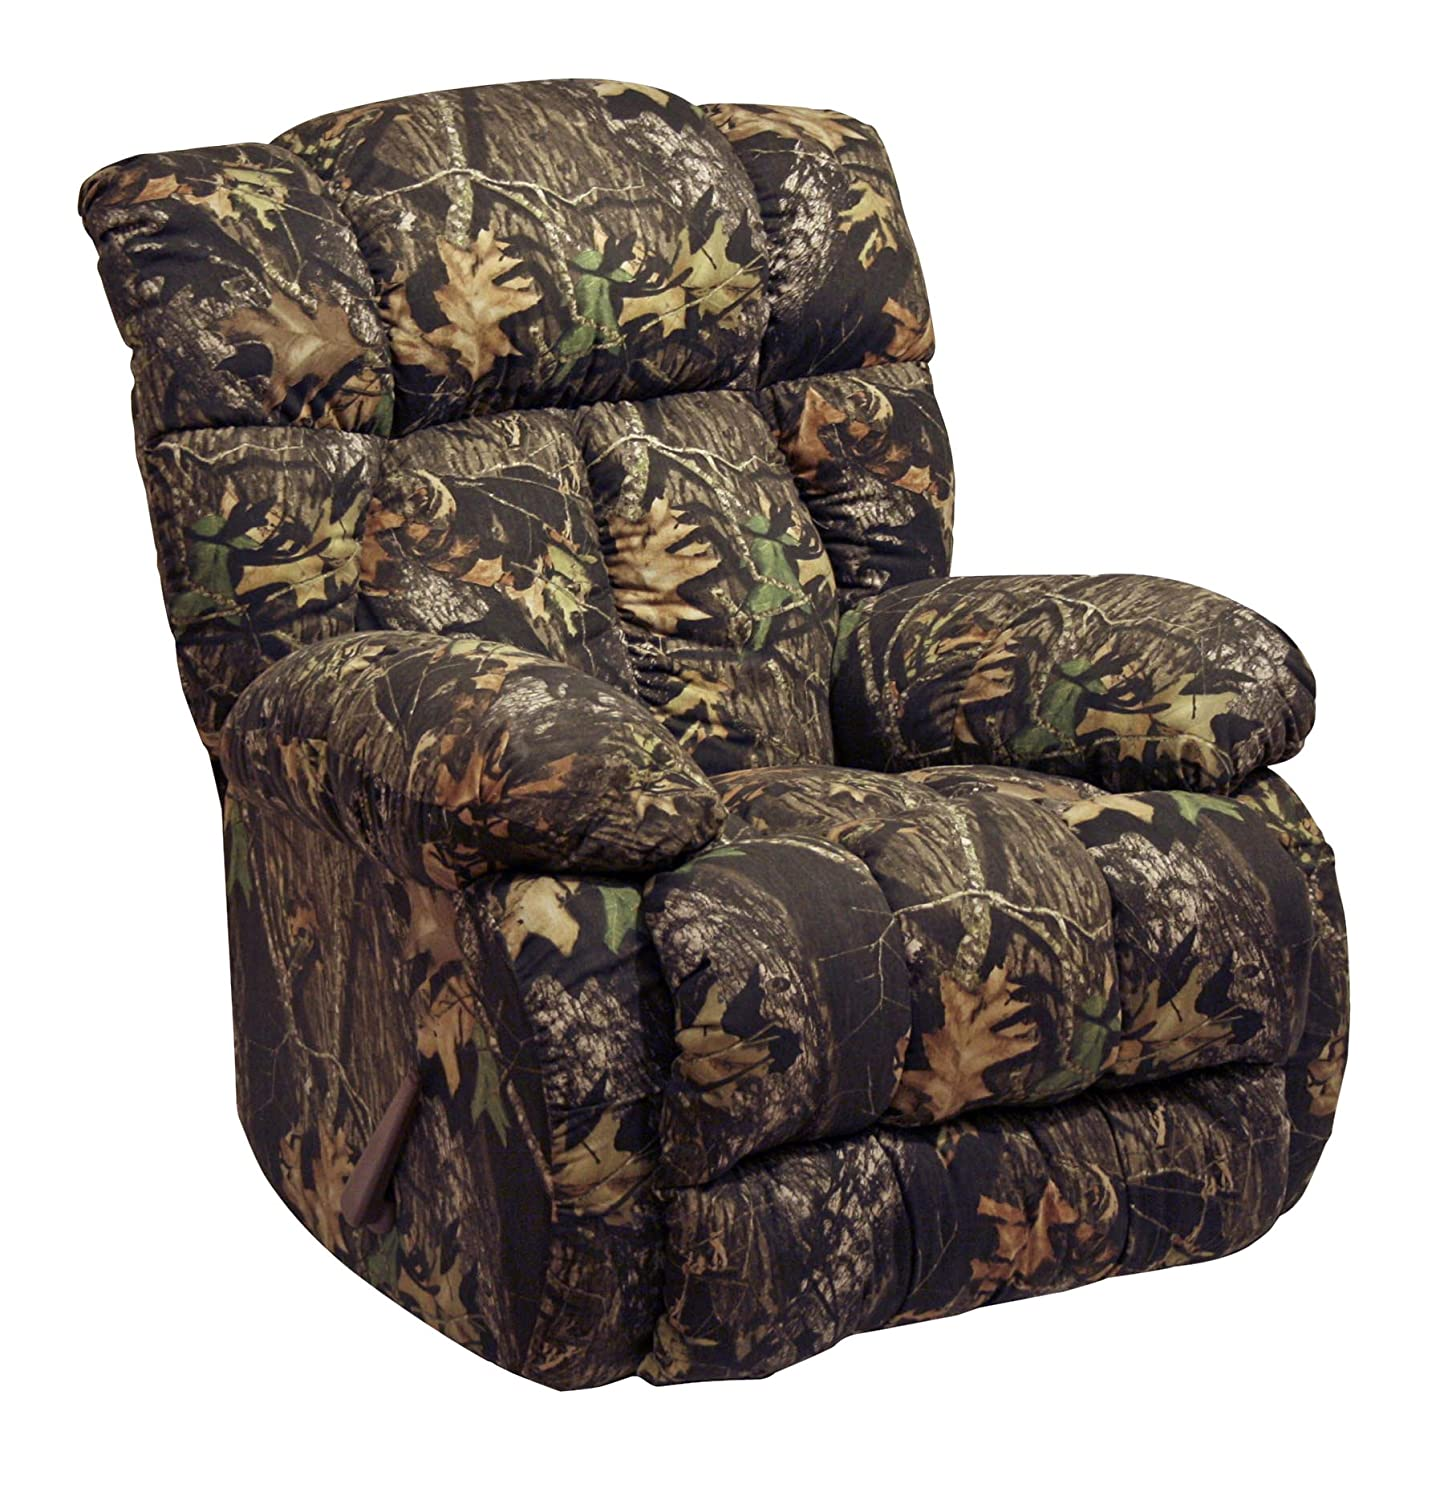 see shells nightmare camo furniture photos